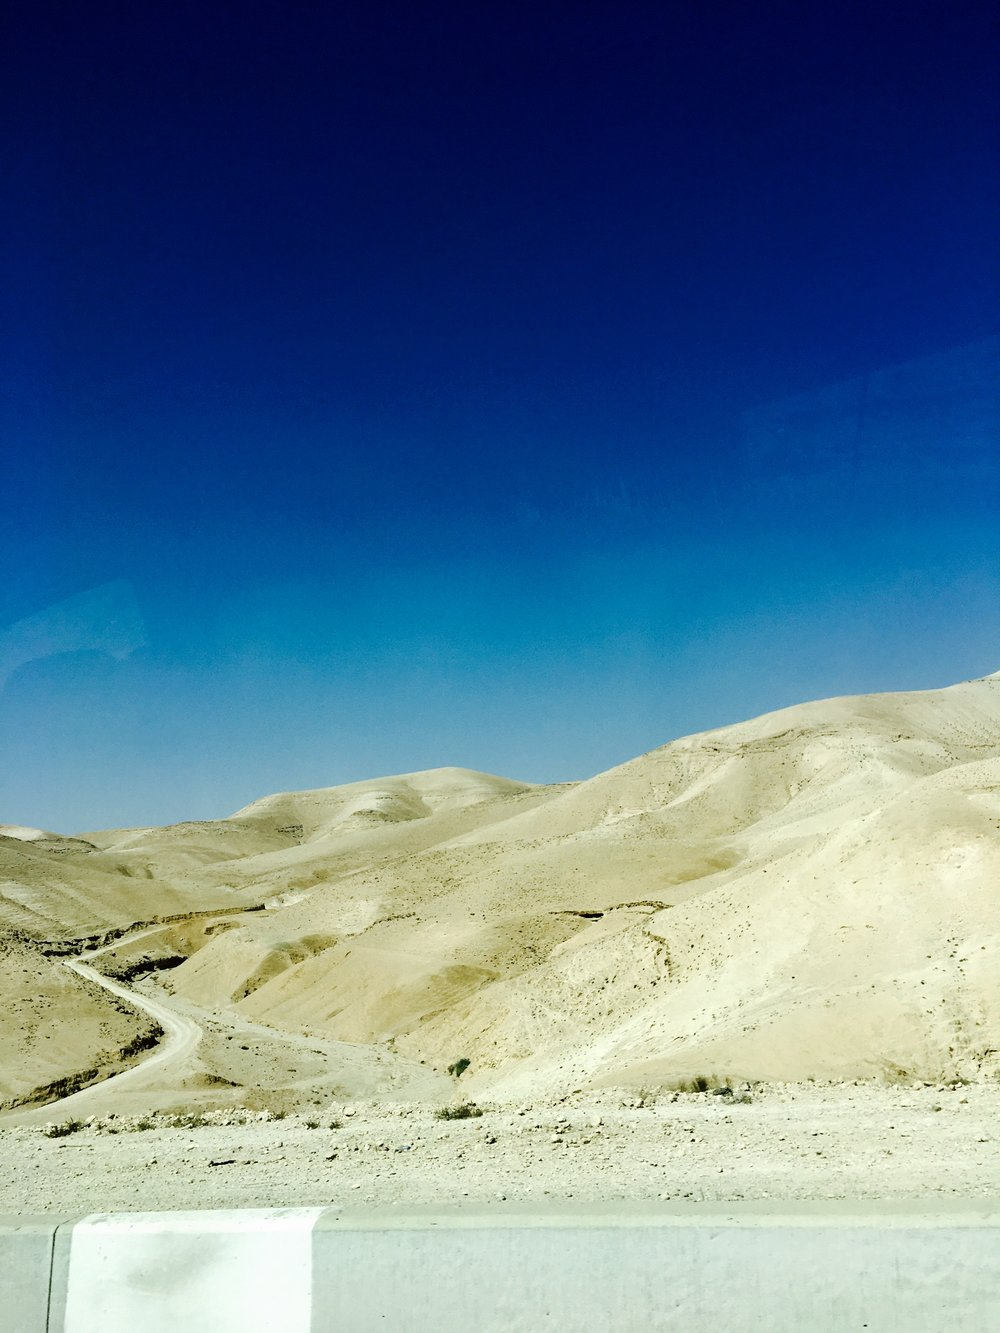 On the way to Masada